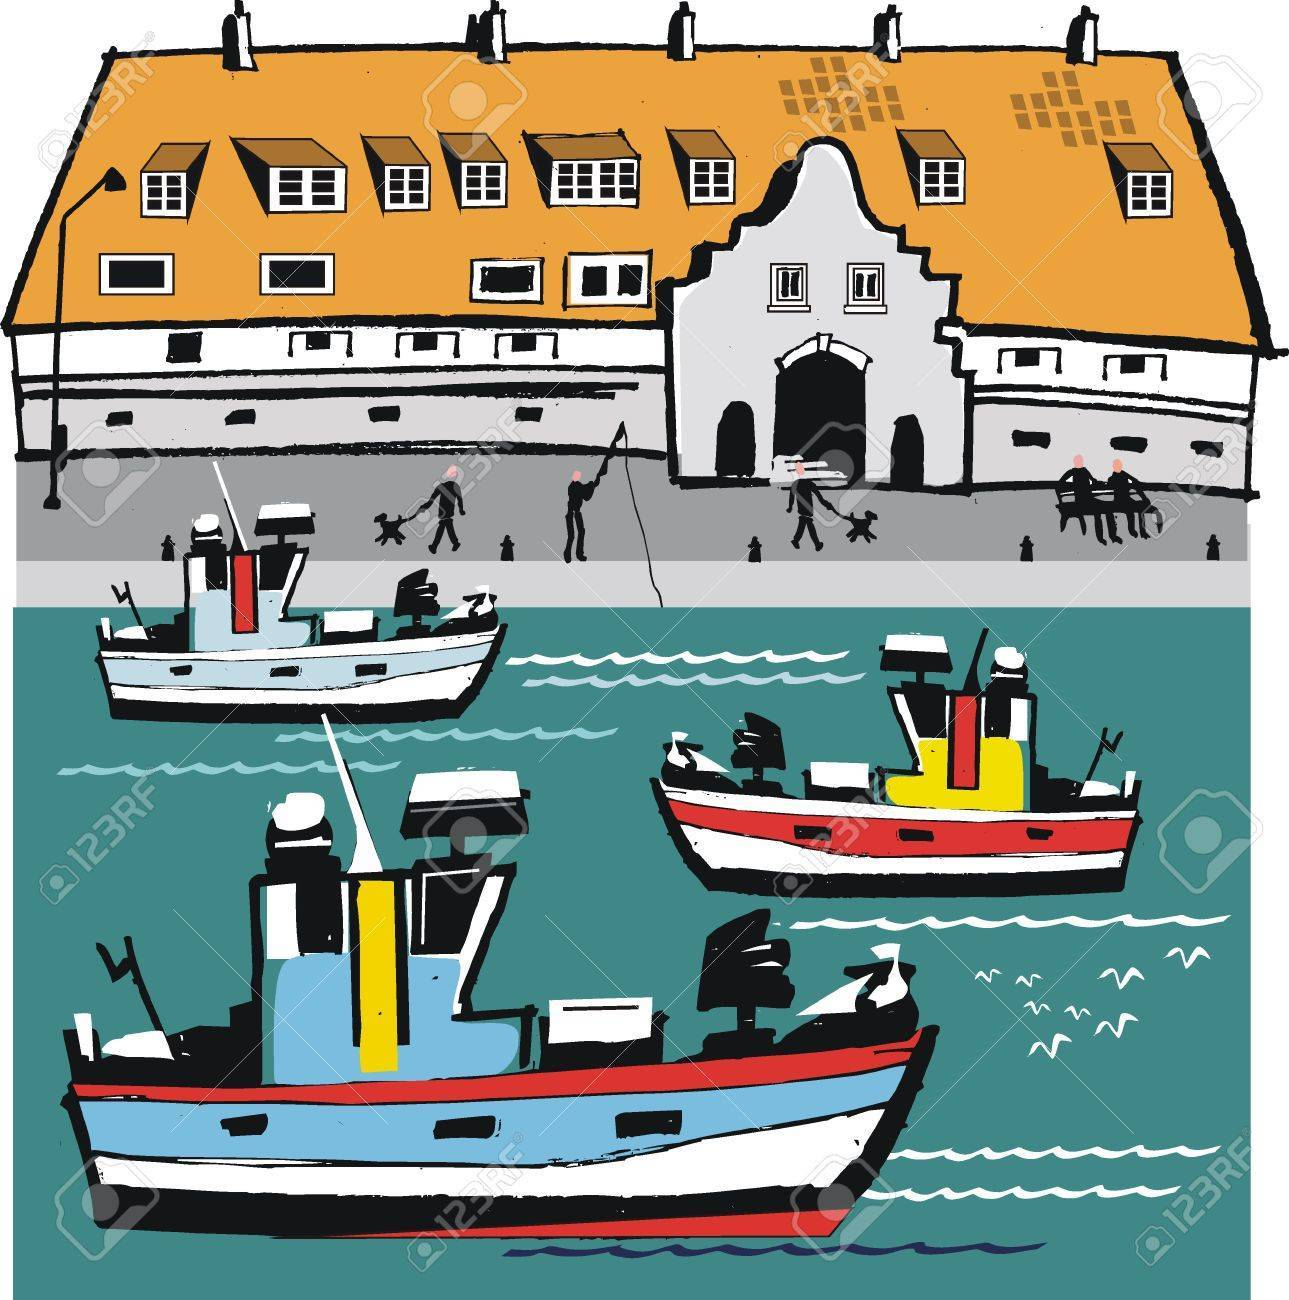 Clipart harbour clipart black and white library Harbour clipart 4 » Clipart Portal clipart black and white library